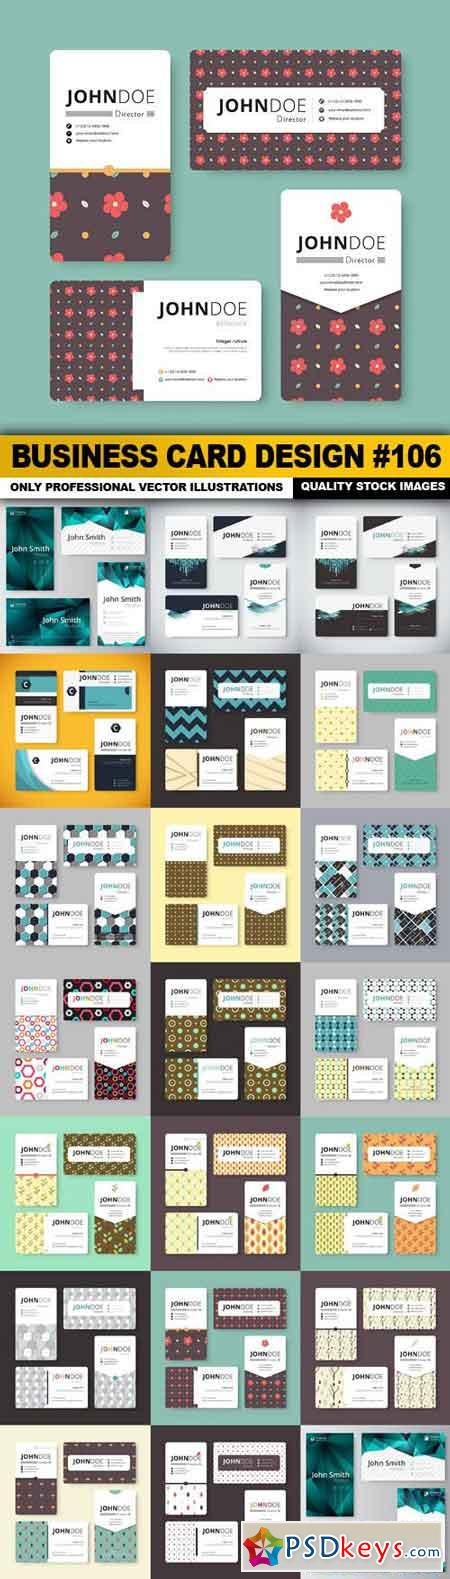 Business Card Design #106 - 20 Vector